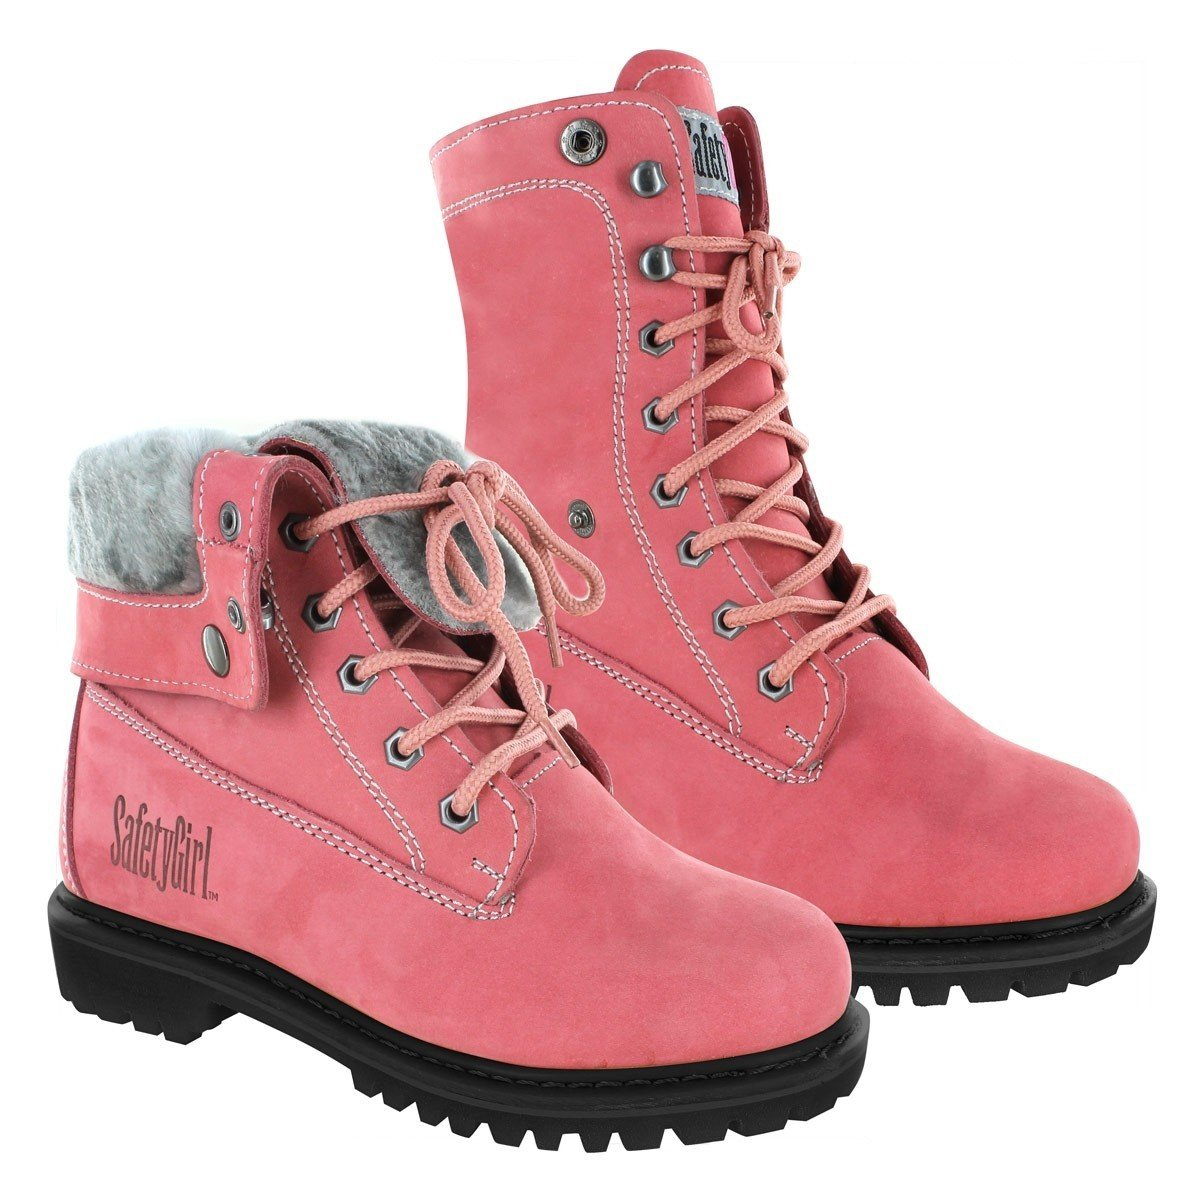 Safety Girl GS008-Pink-ST-9.5M Madison Fold-Down Work Boot - Pink Steel Toe 9.5M, English, Capacity, Volume, Leather, 9.5M, Pink ()